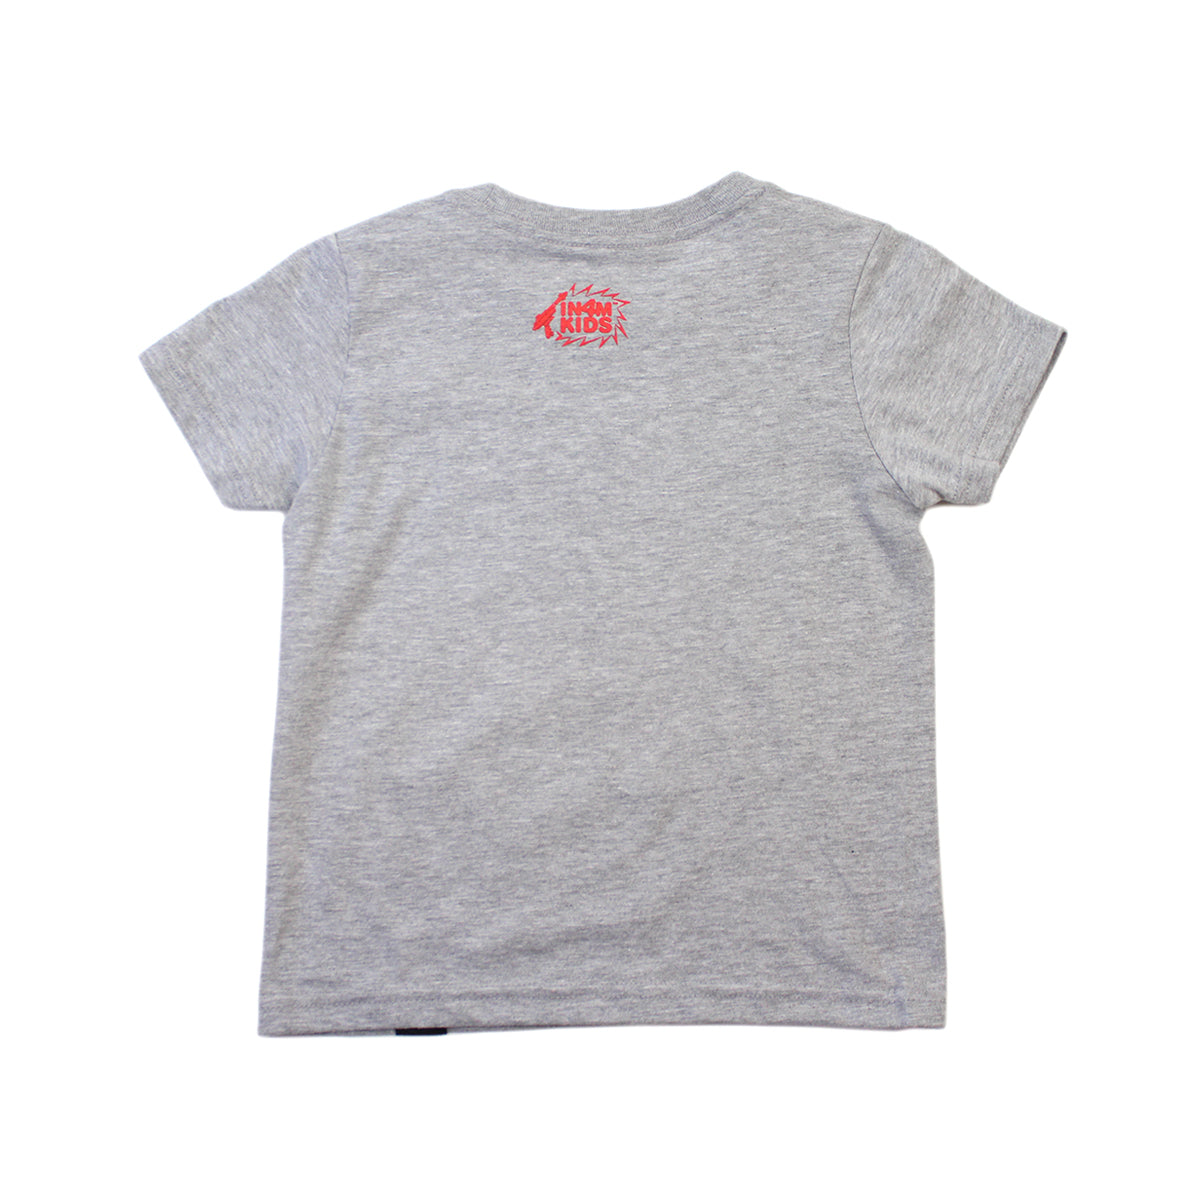 IN4MKIDS - HI SCRIPT KIDS TEE (GRAY/RED)